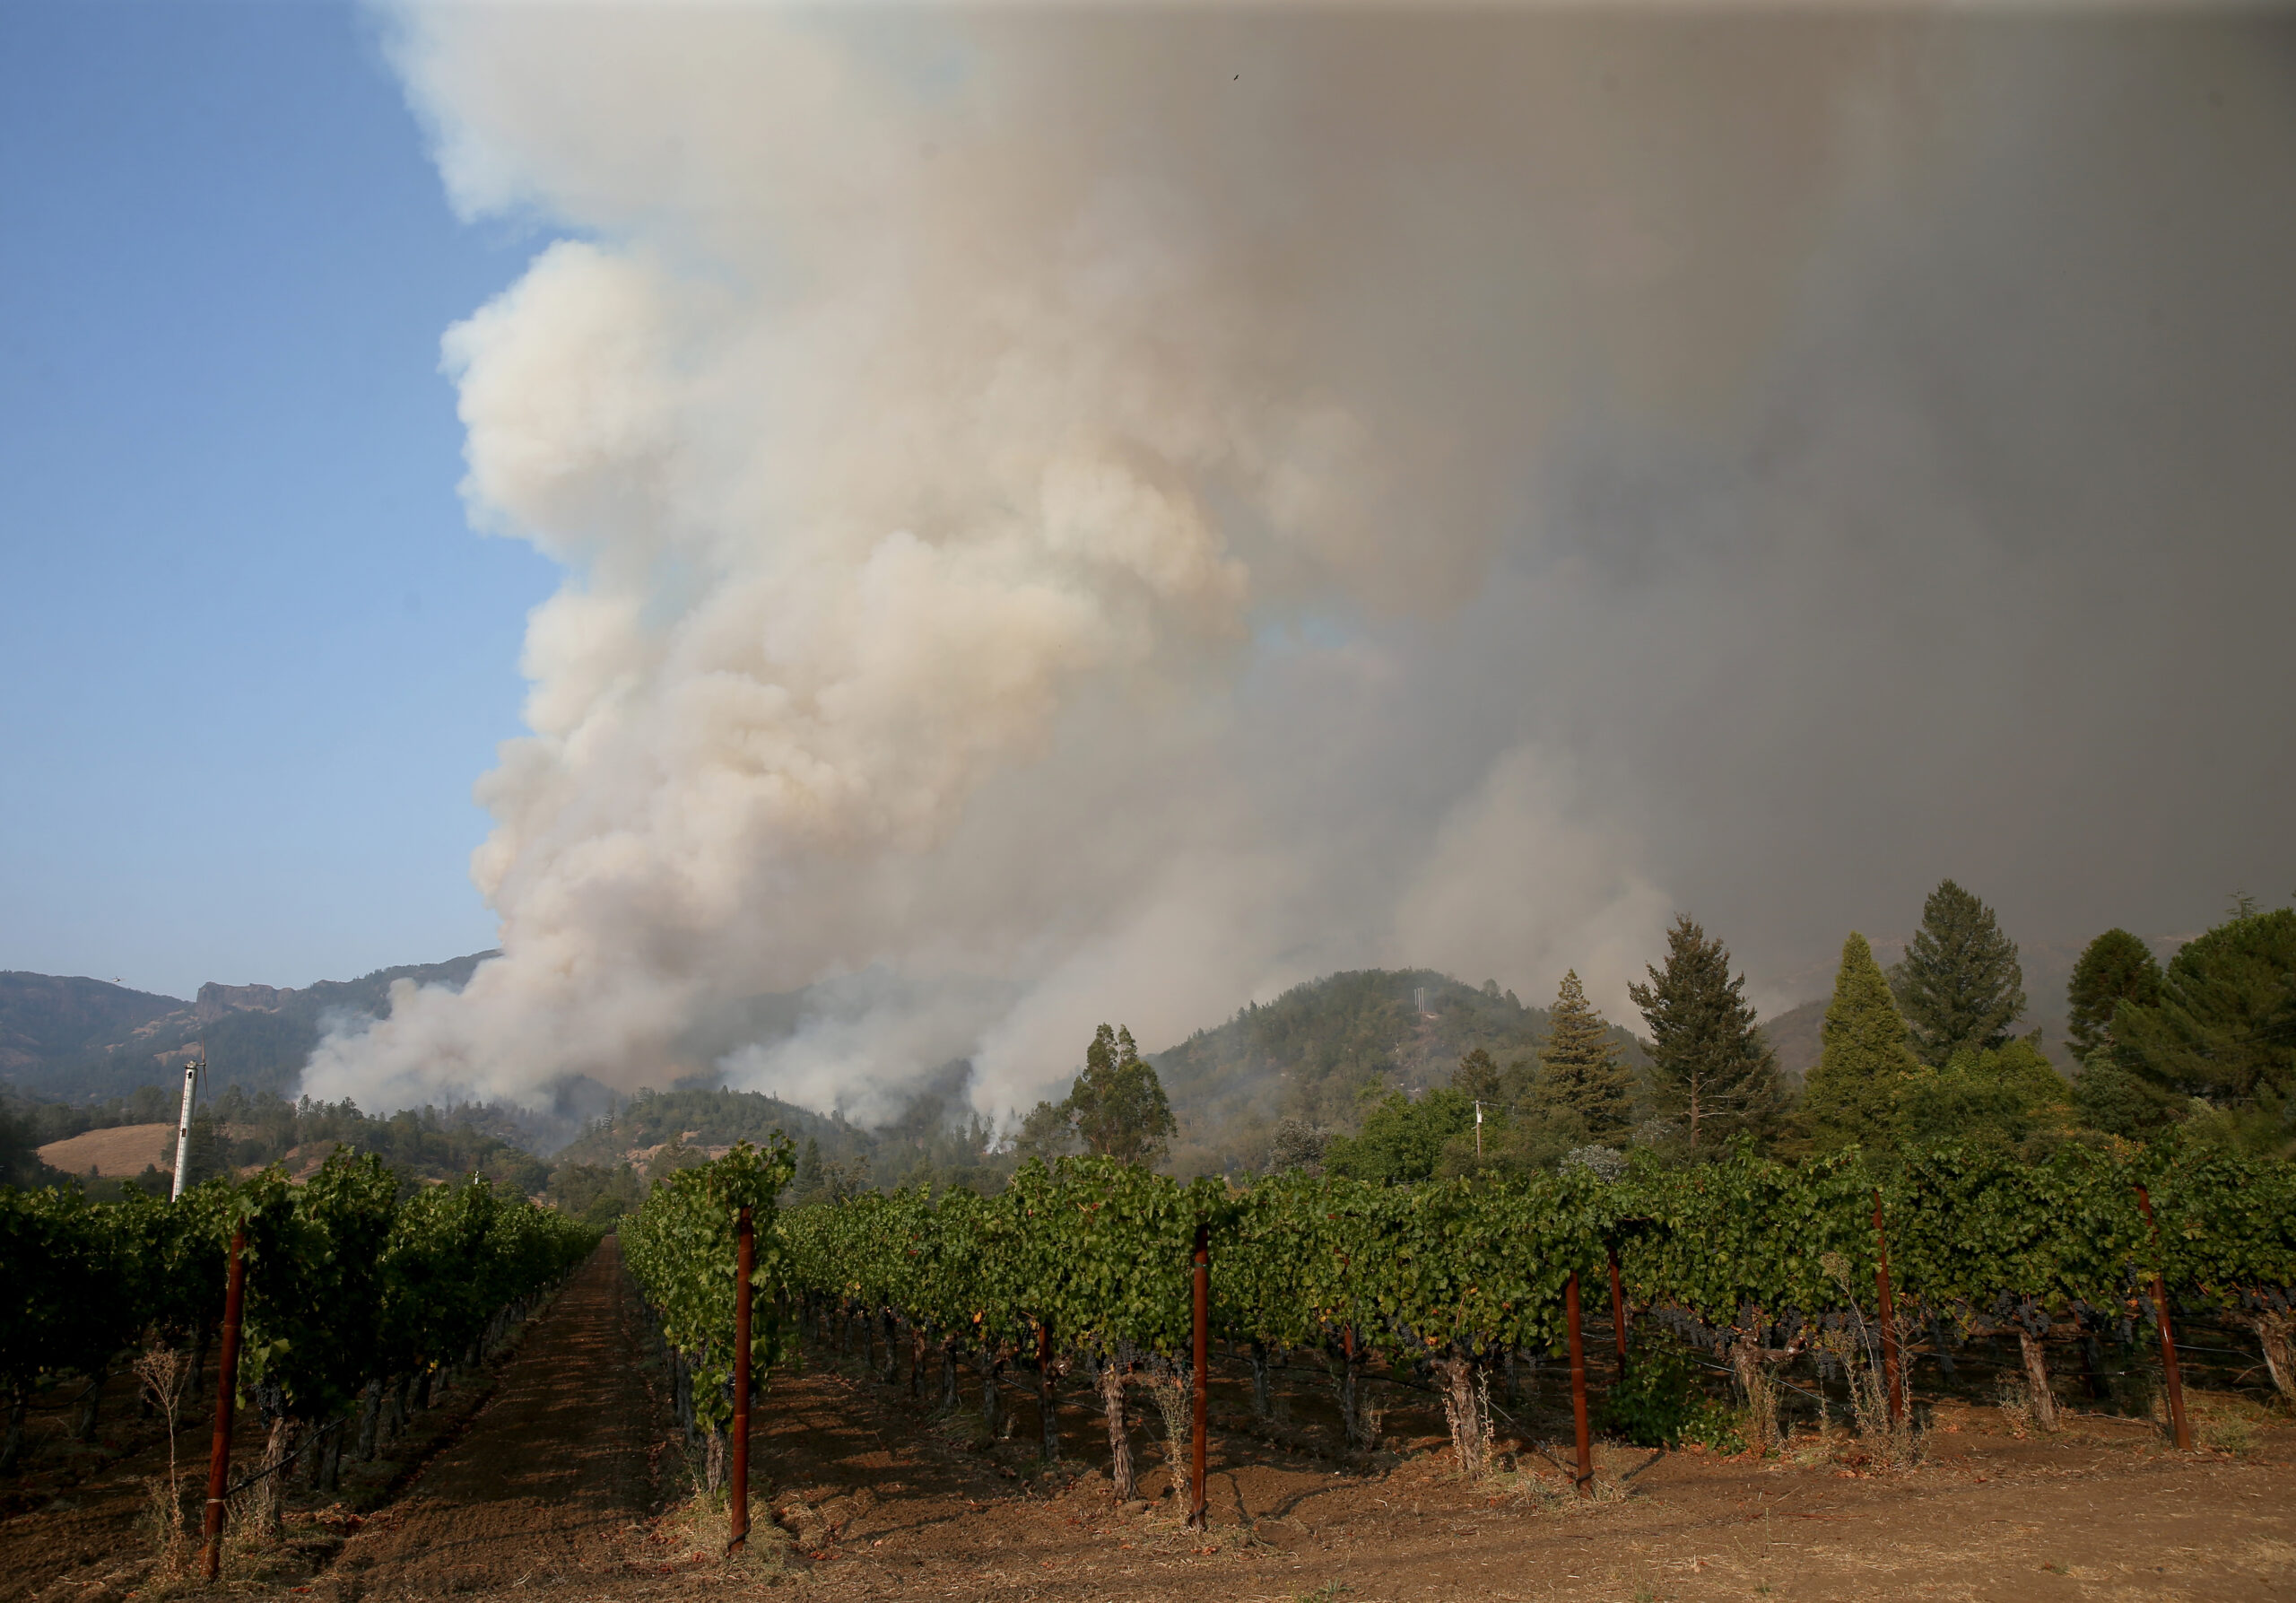 The Glass Fire burns near the Jericho Canyon Vineyard and Winery about a mile out of downtown Calistoga, California, on Wednesday, Sept. 30, 2020. Credit: Jane Tyska/Digital First Media/East Bay Times via Getty Images